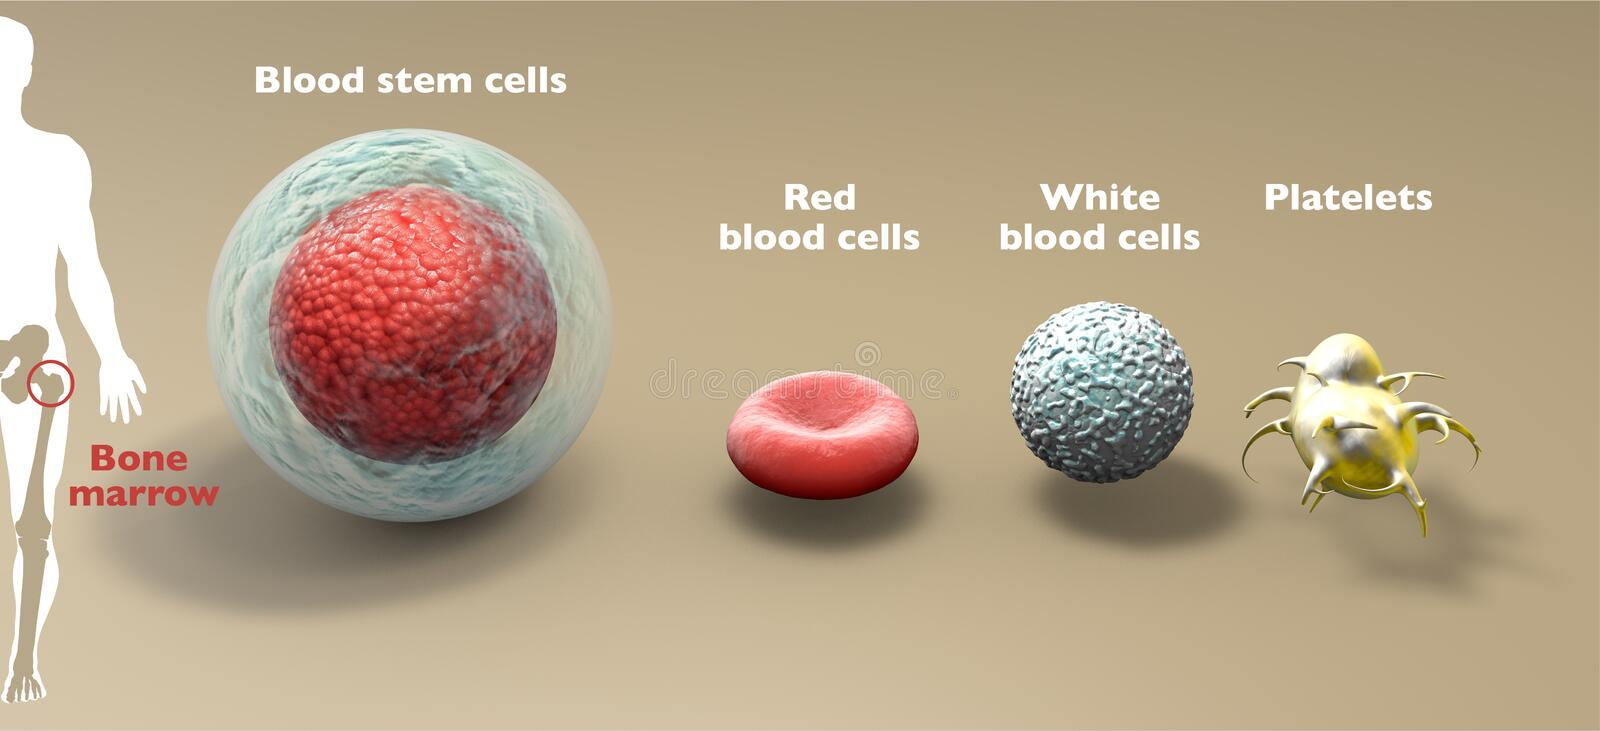 Blood stem cell is an immature cell that can develop into all types of blood cells: white blood cells, red blood cells, platelets. Blood stem cell is an immature vector illustration